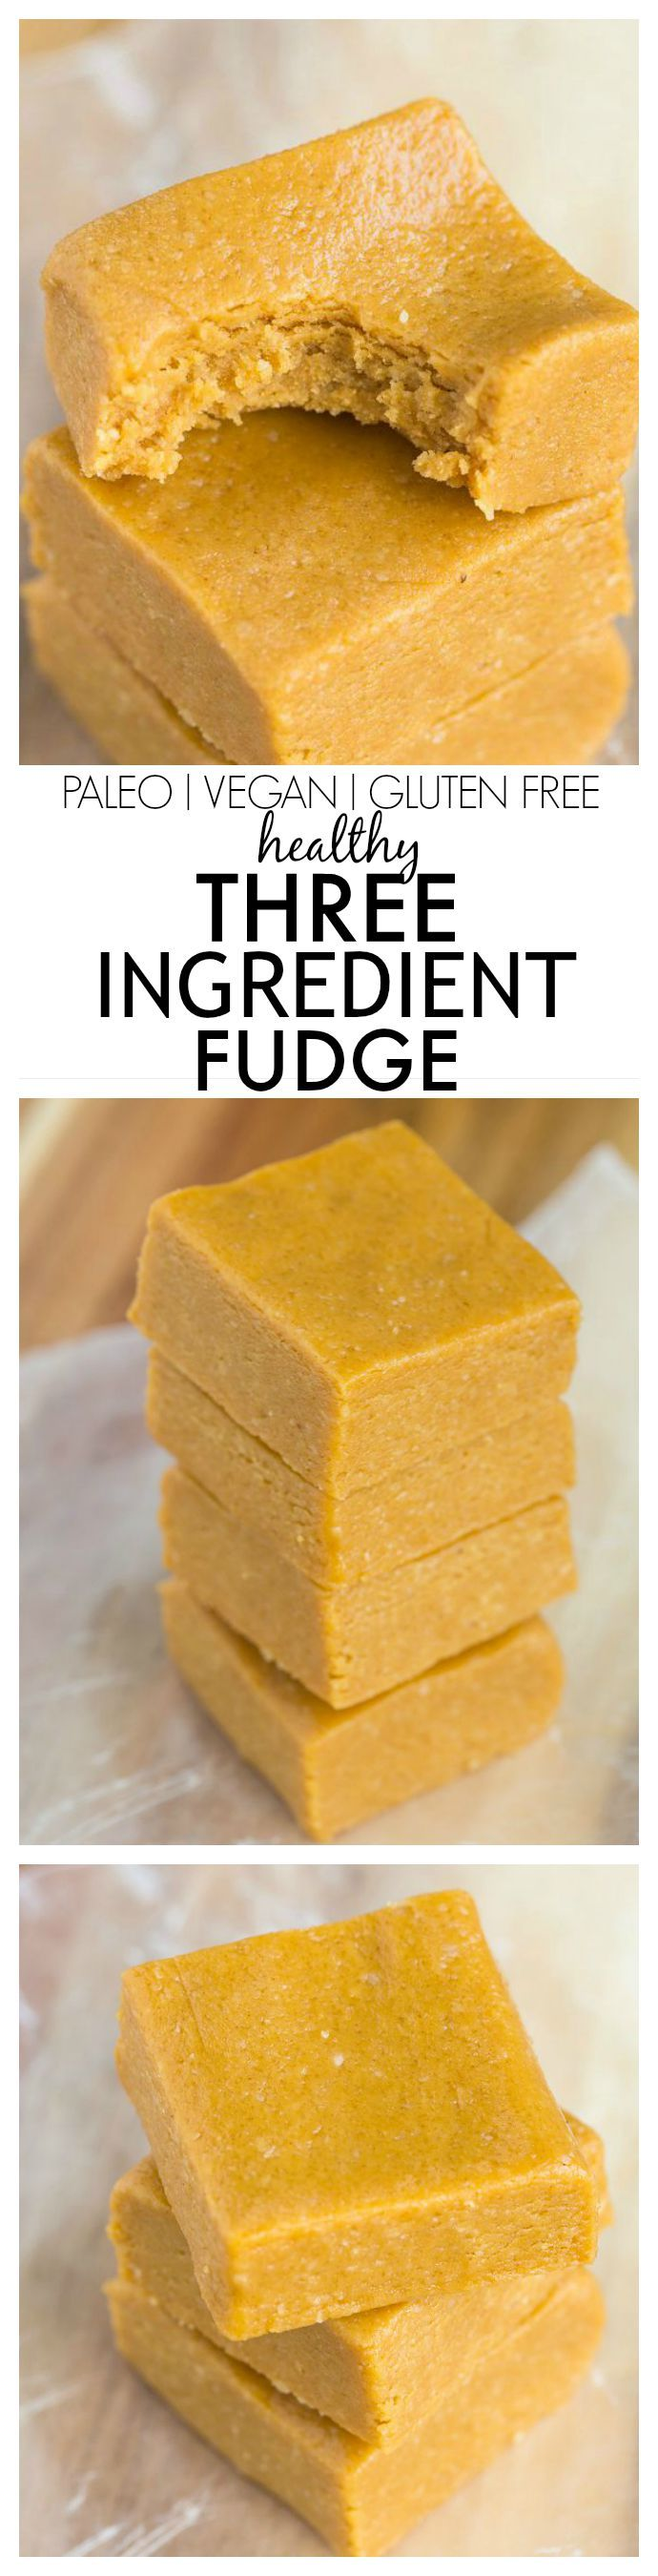 Three Ingredient No Bake Fudge which melts in your mouth and takes 5 minutes! An easy snack or dessert recipe which is Paleo, vegan and gluten free too!